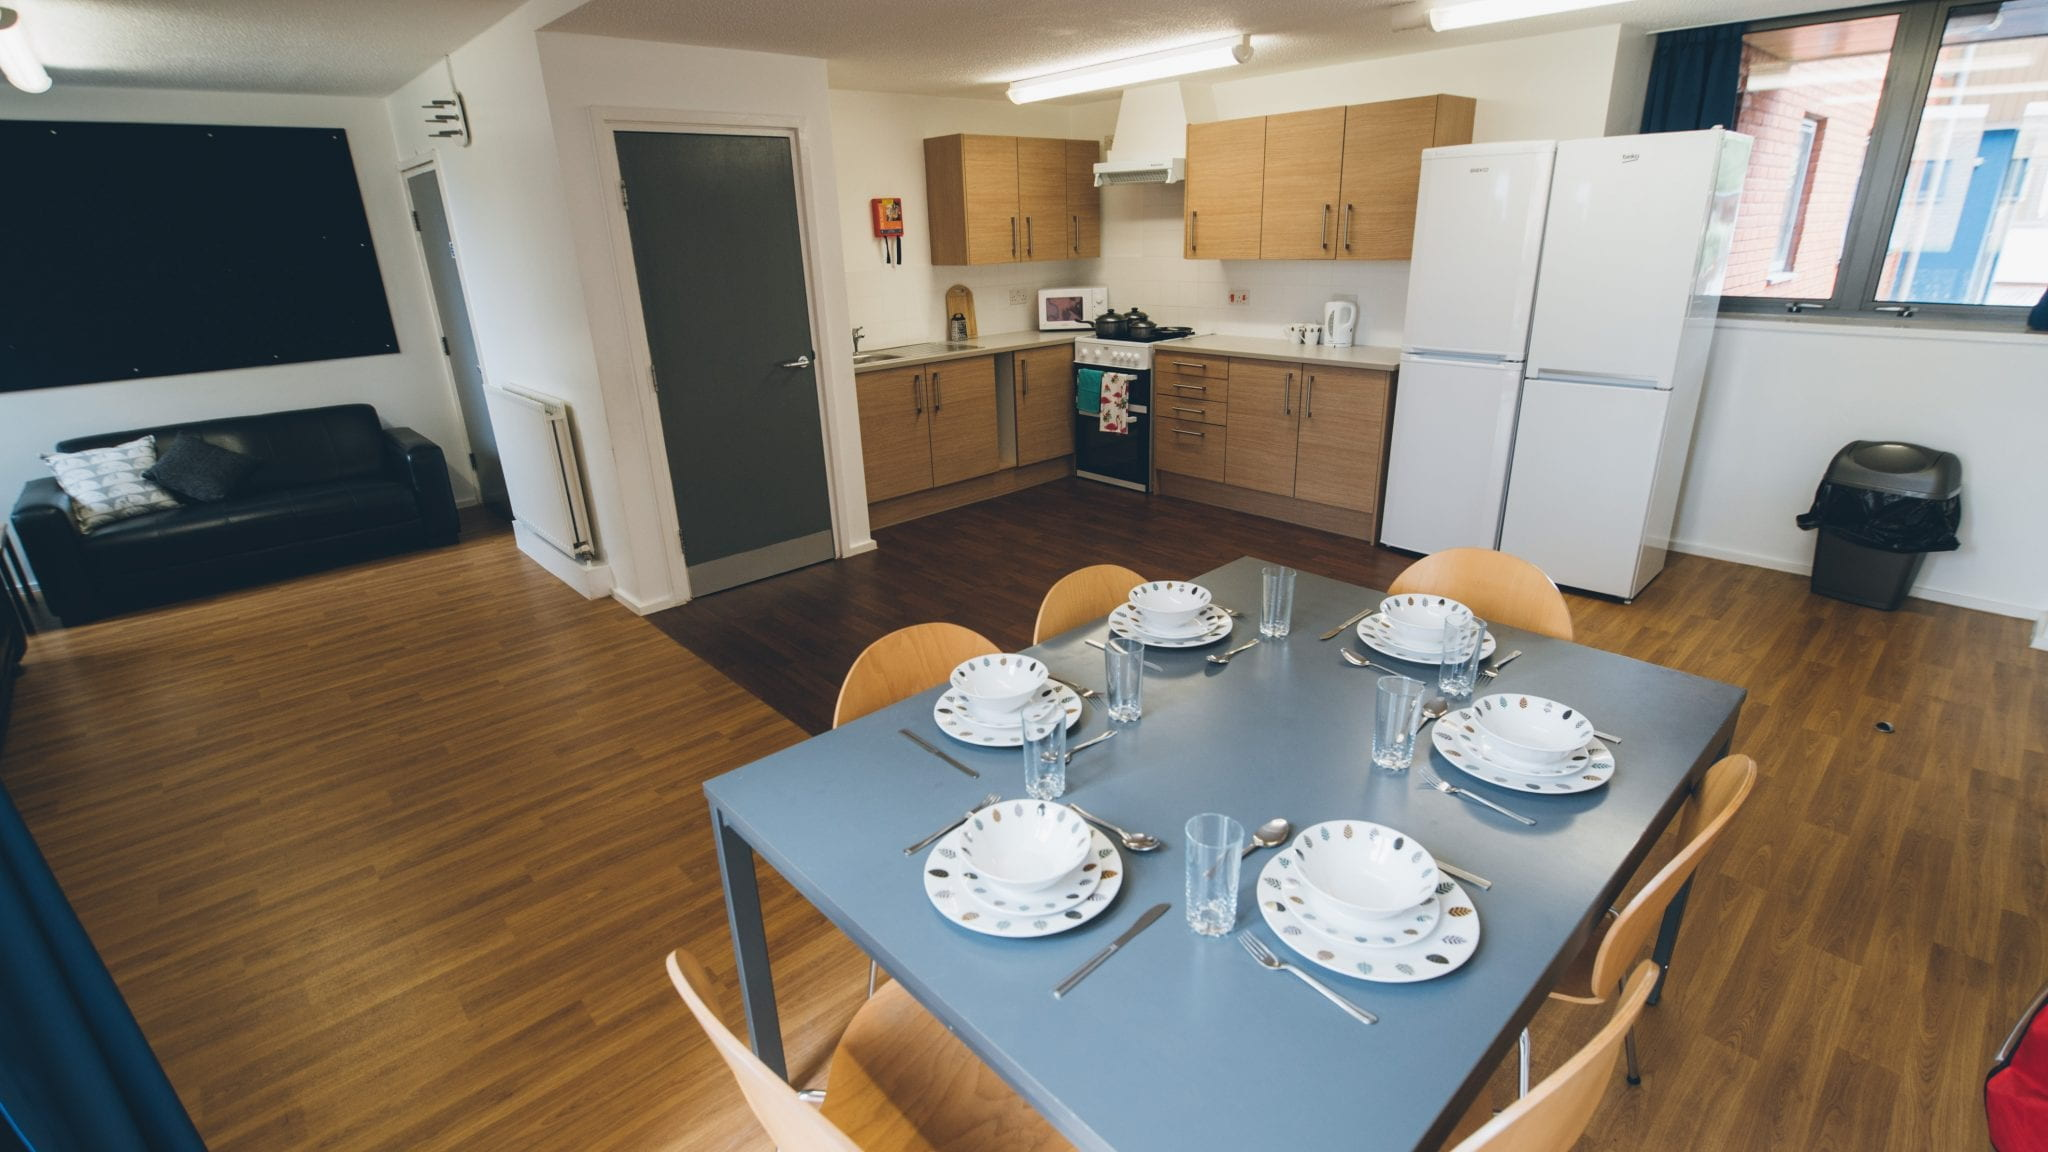 An example Lincoln Courts kitchen showing dining table & chairs, kitchen worktops and cupboards. Showing the room dressed with crockery cutlery and pots and pans (these are not provided & are shown for decorative purposes only).